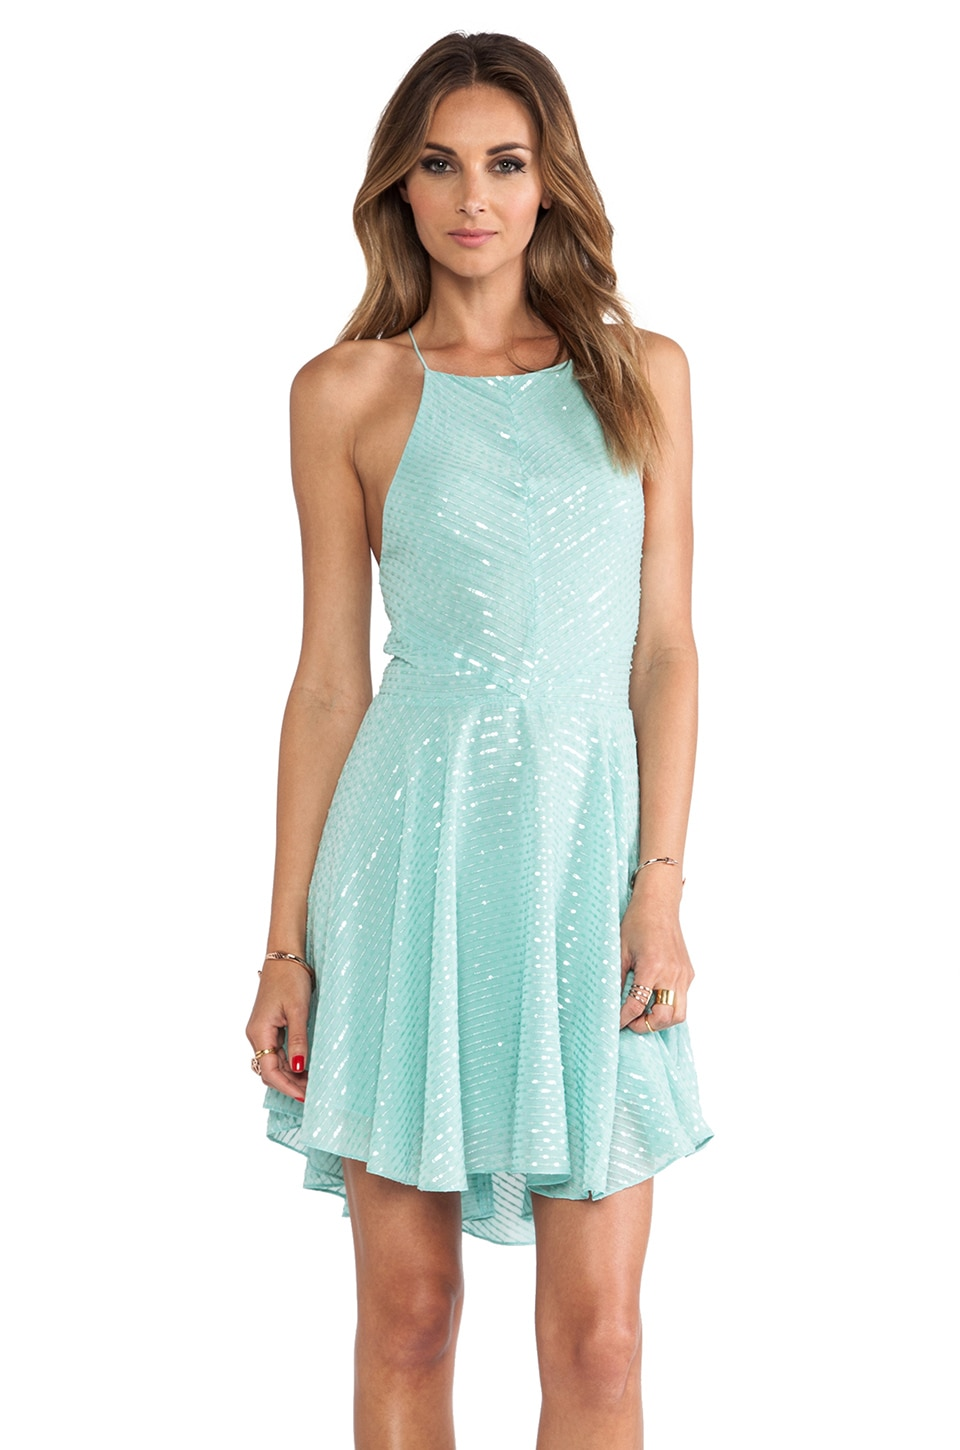 Dolce Vita Mahdis Dress in Mint